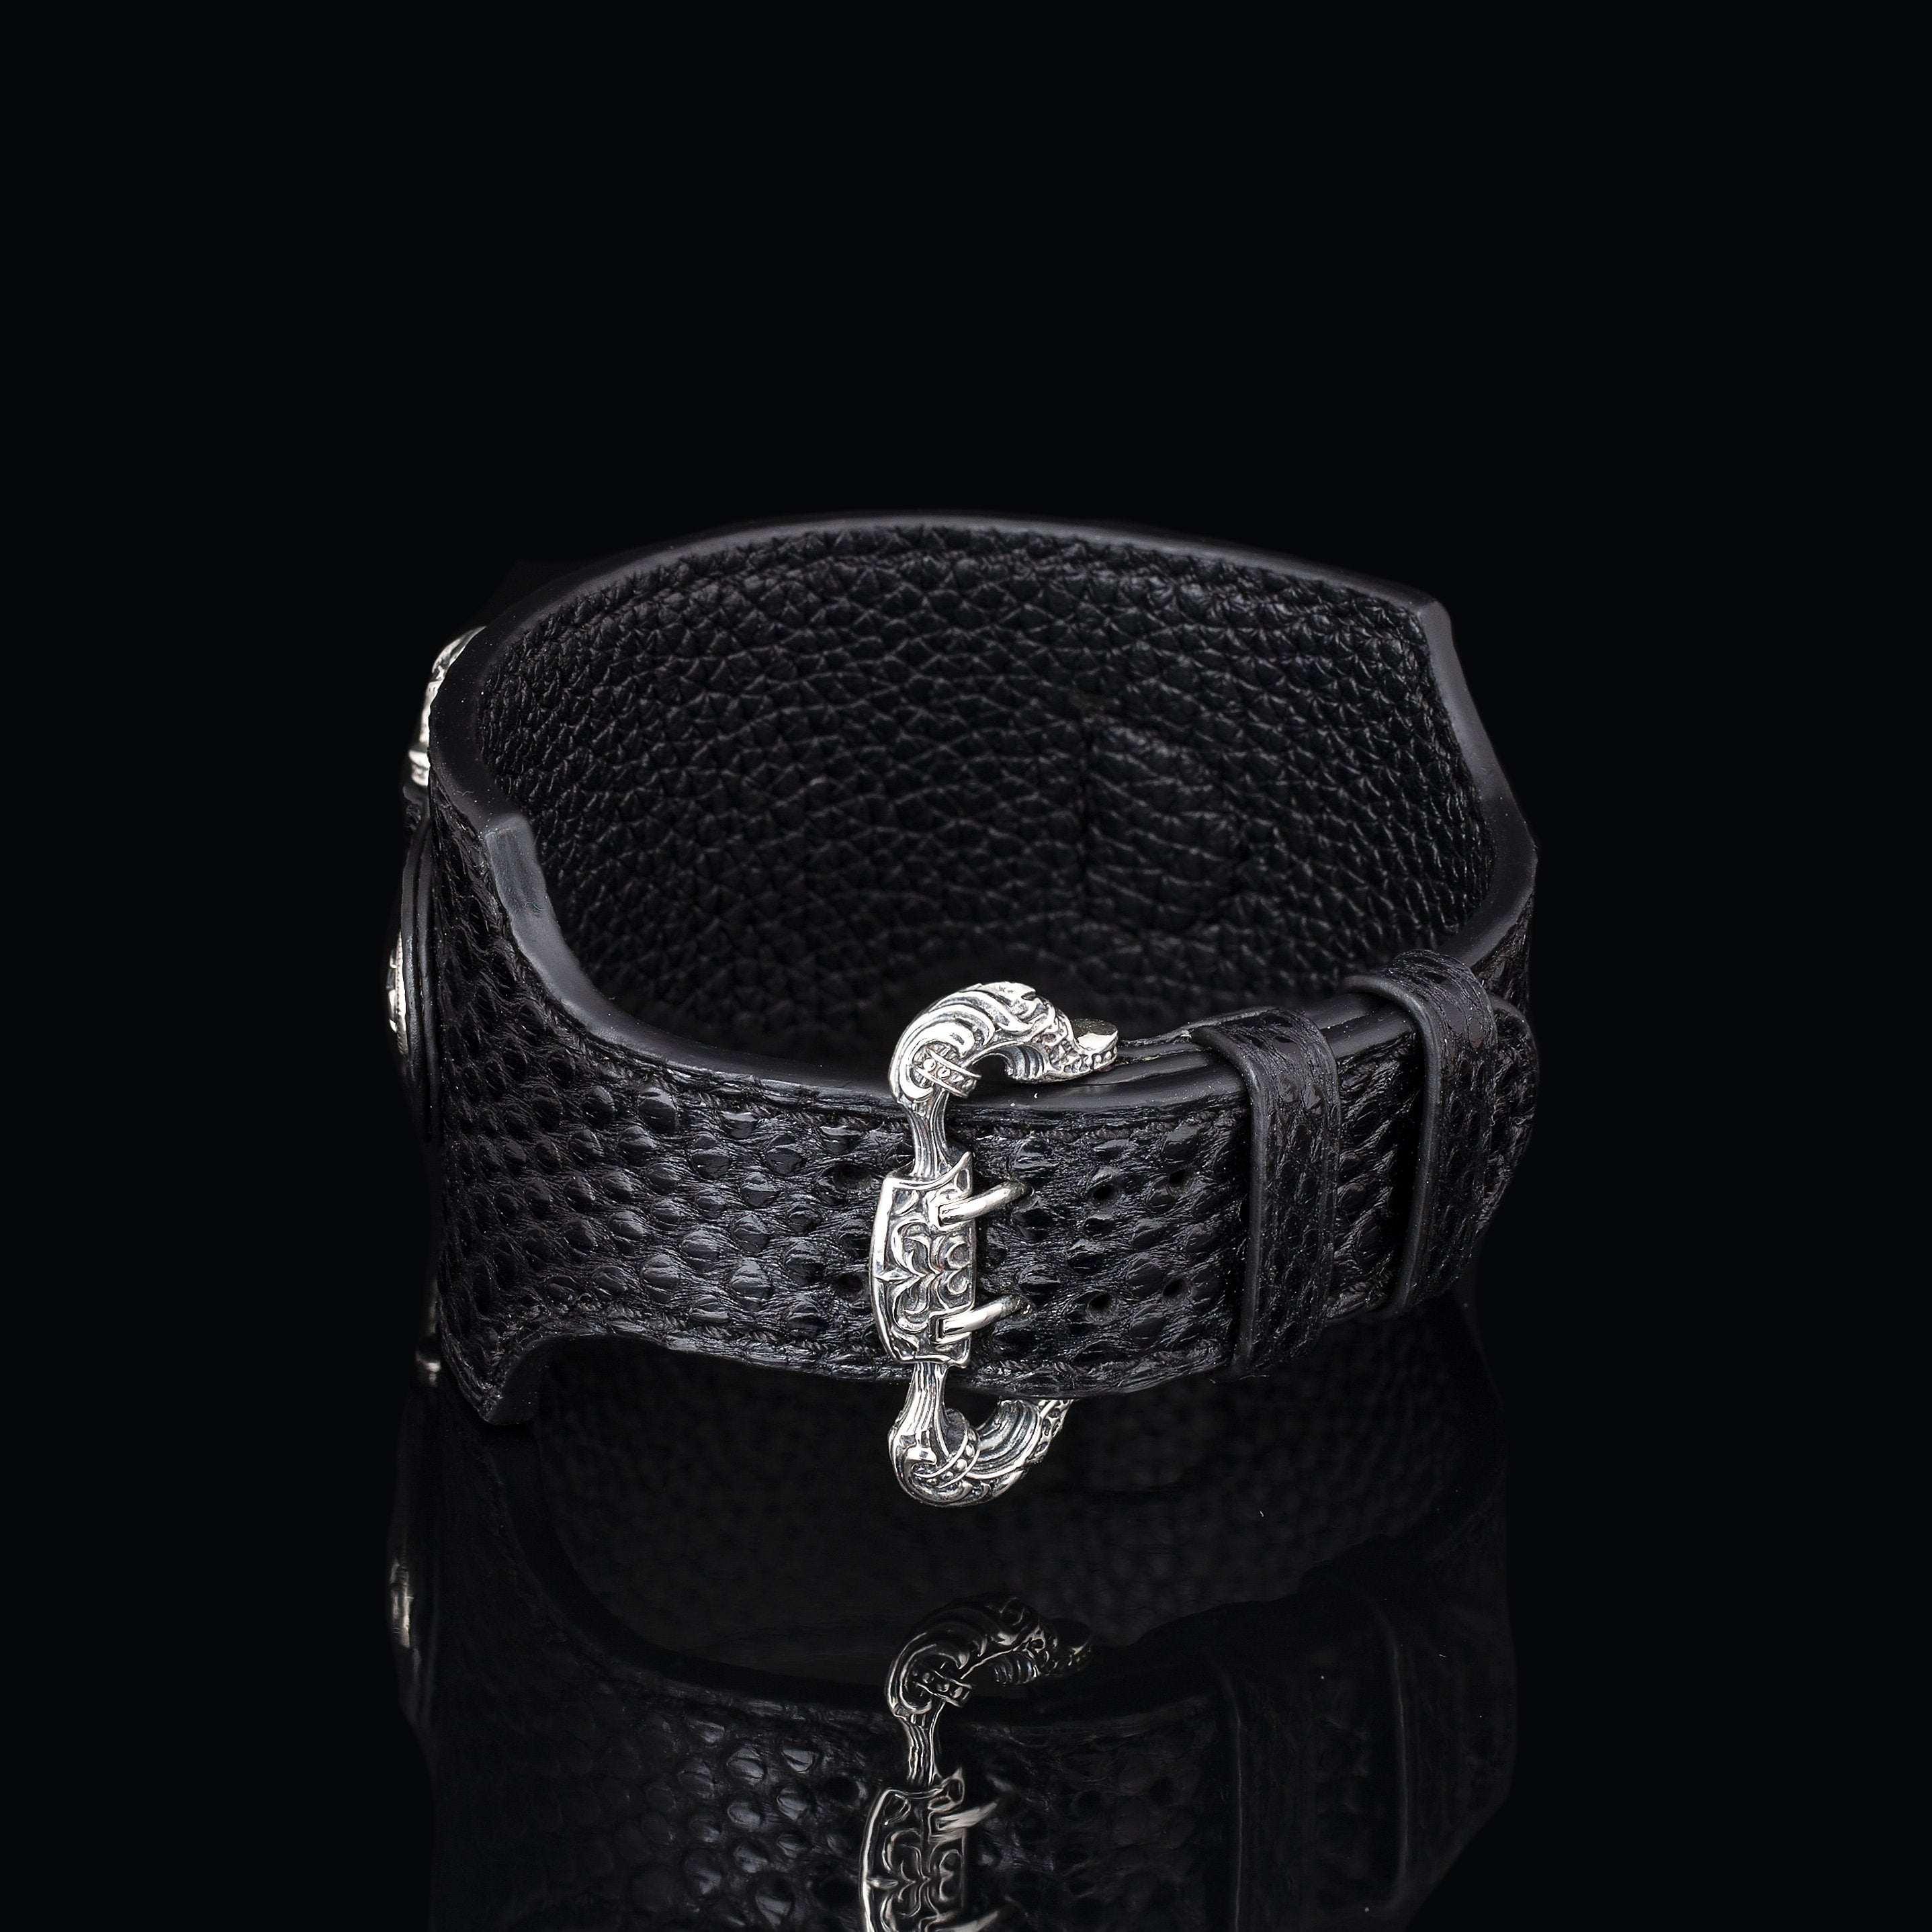 Inquisitor Cuff Bracelet (Carung)